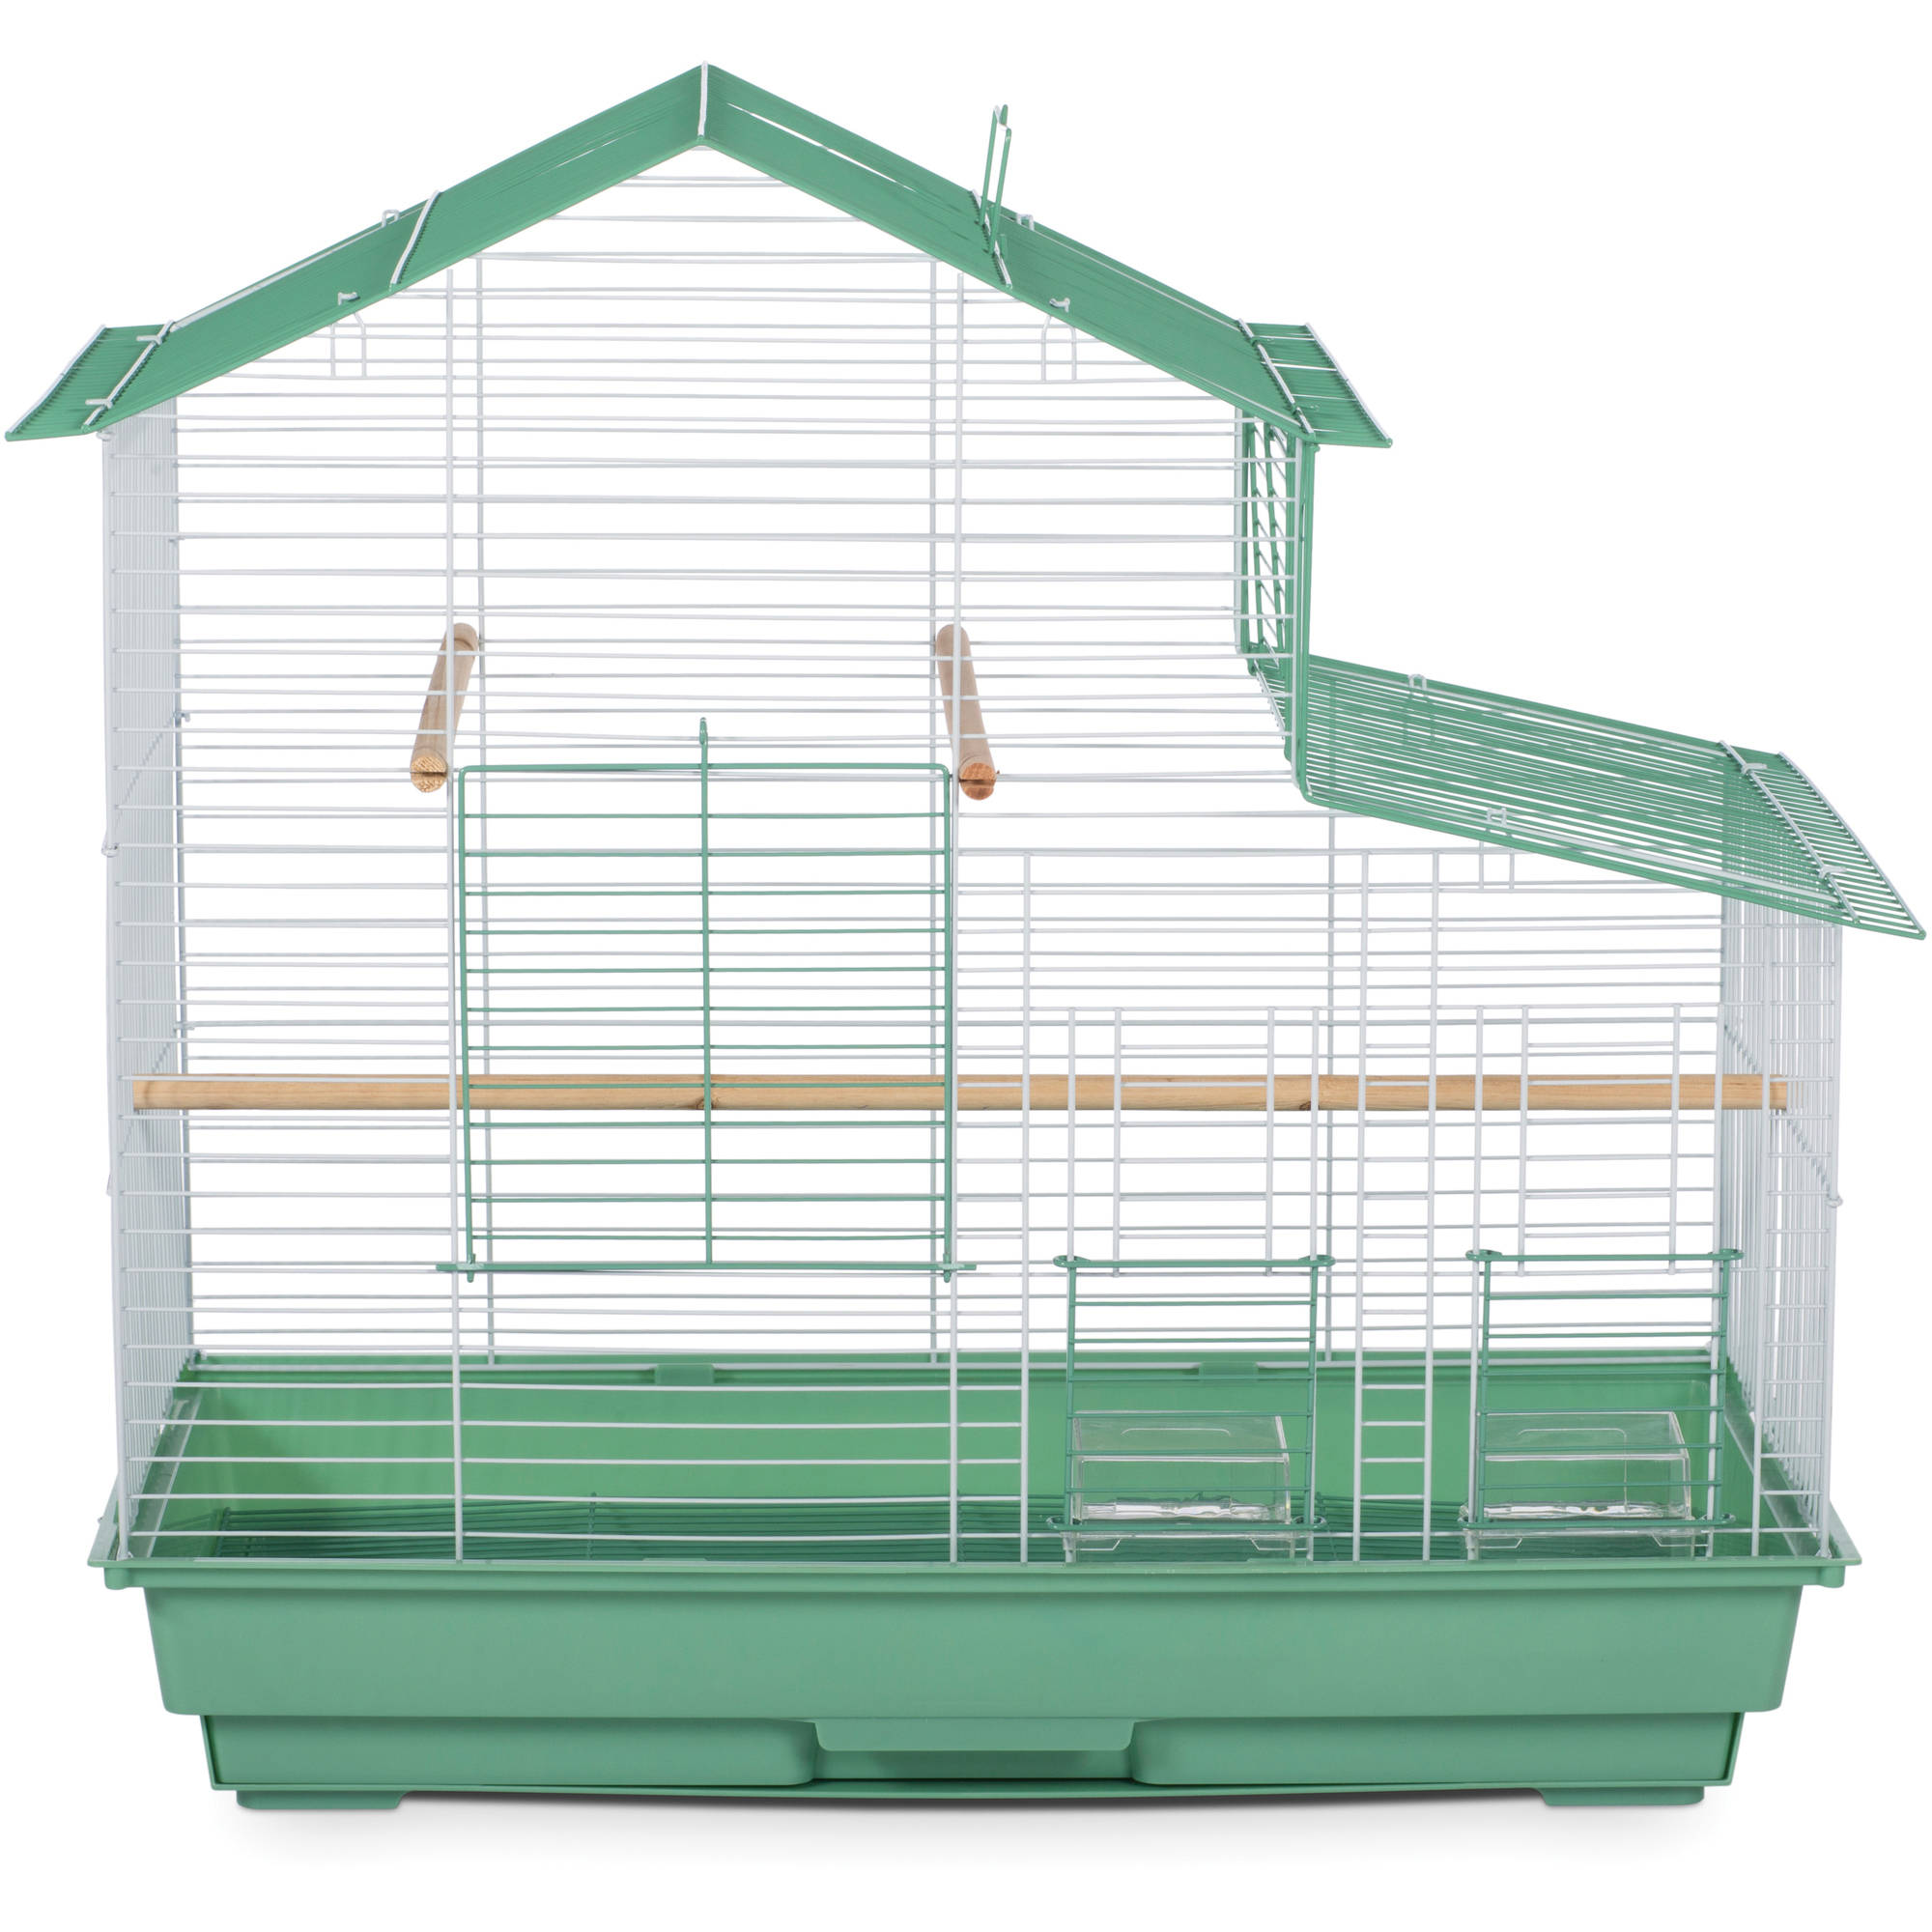 Prevue Pet Products House Style Small Bird Cage, Green, SP41615-2 by Prevue Hendryx